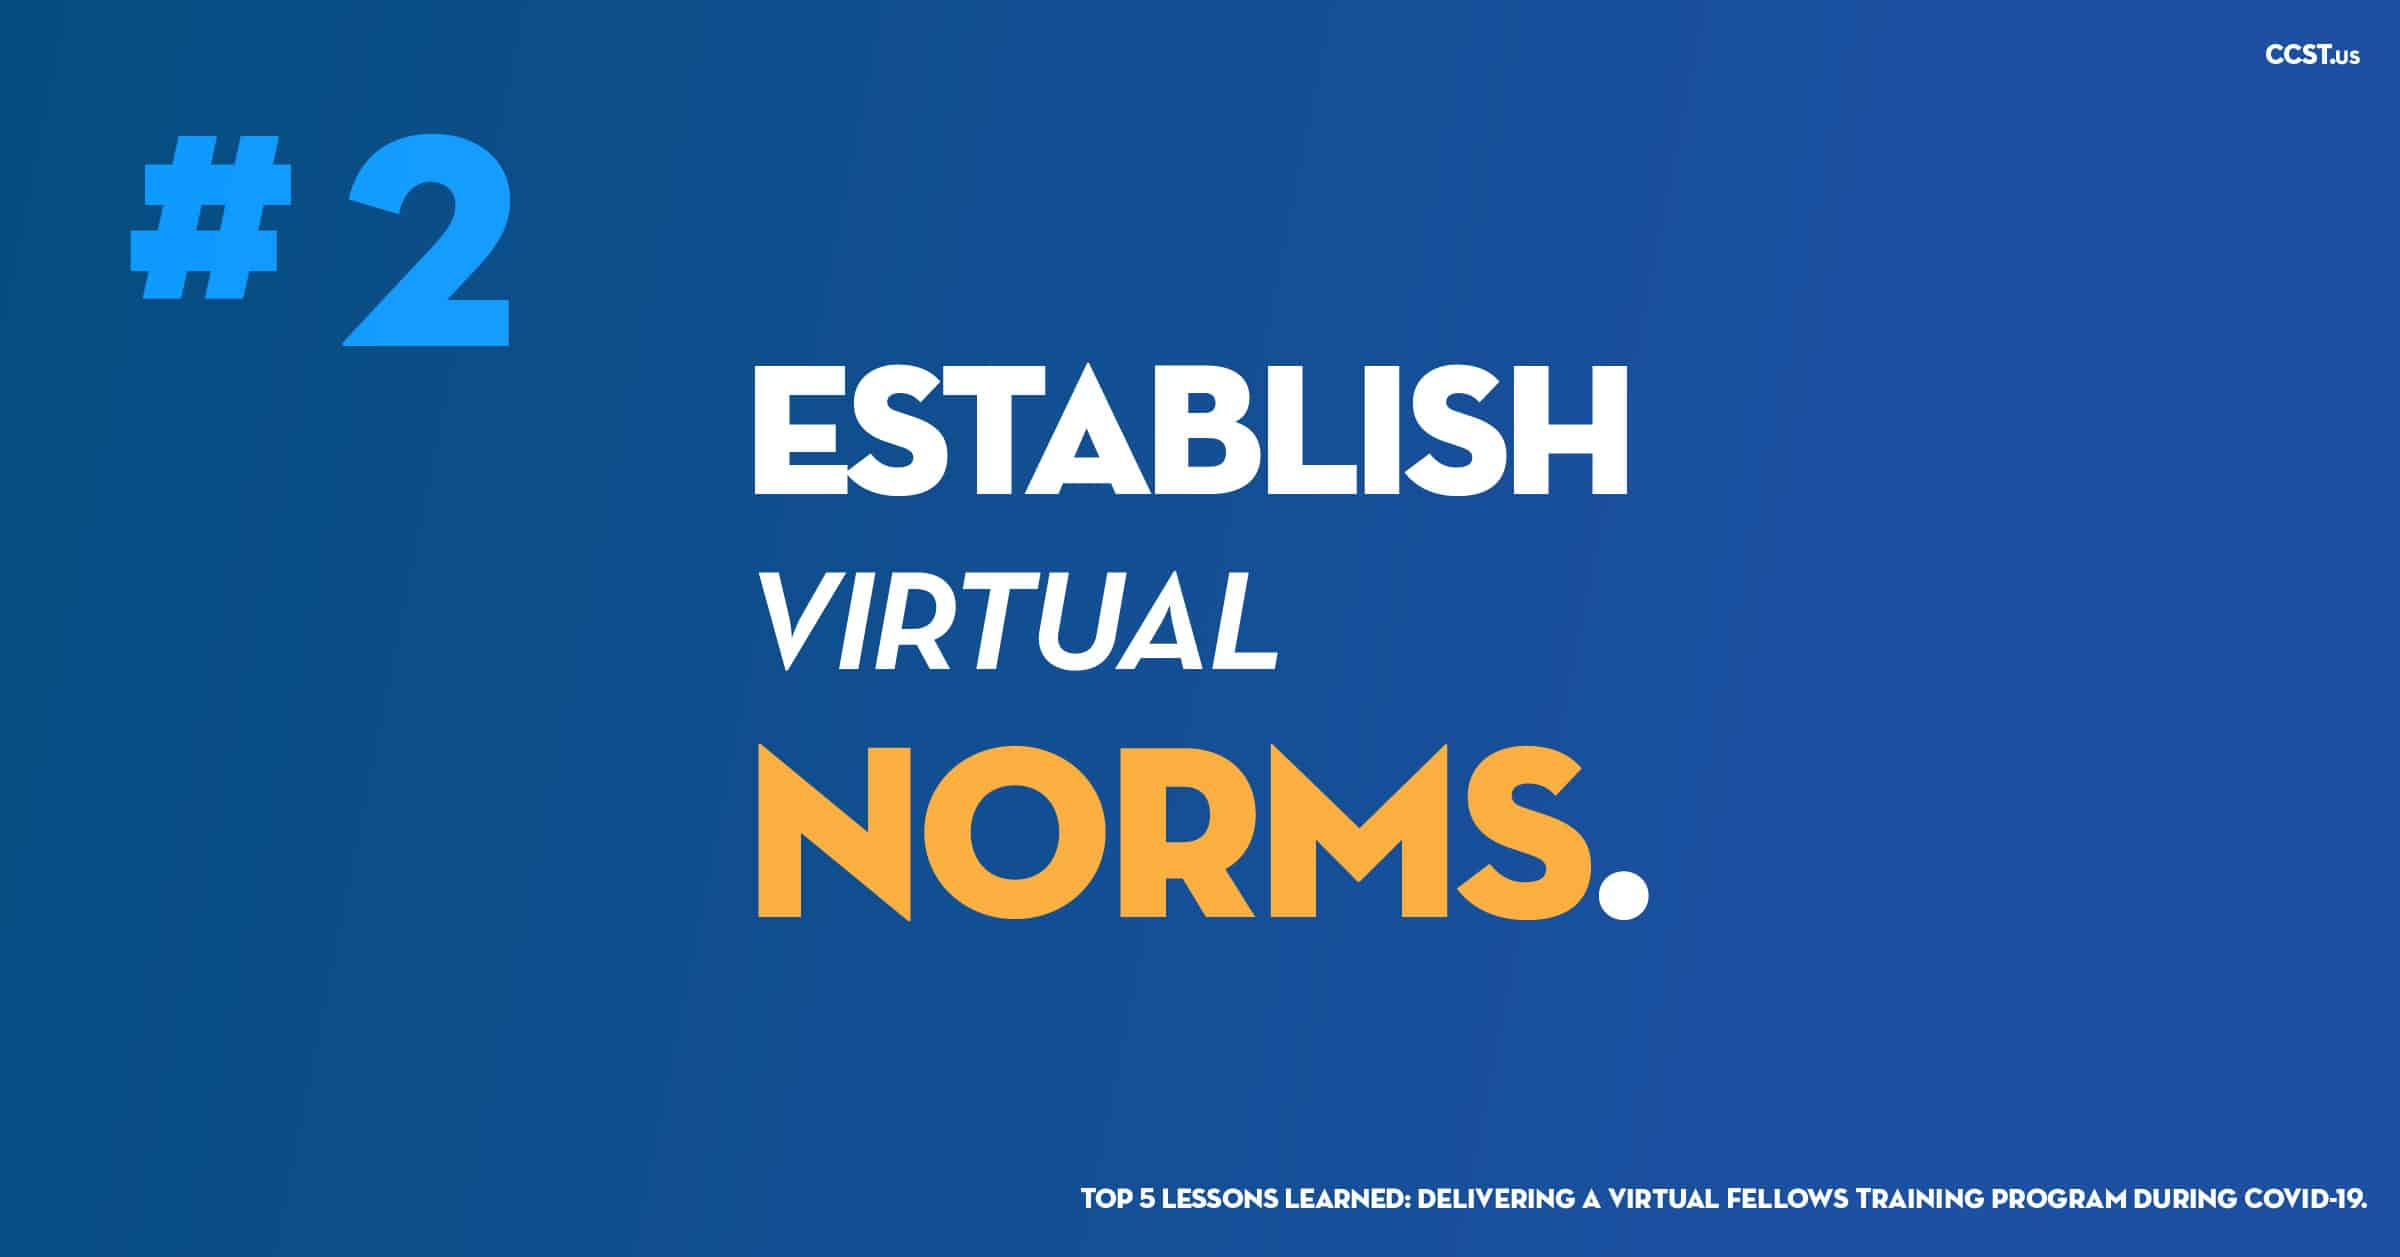 #2 ESTABLISH VIRTUAL NORMS on blue background.